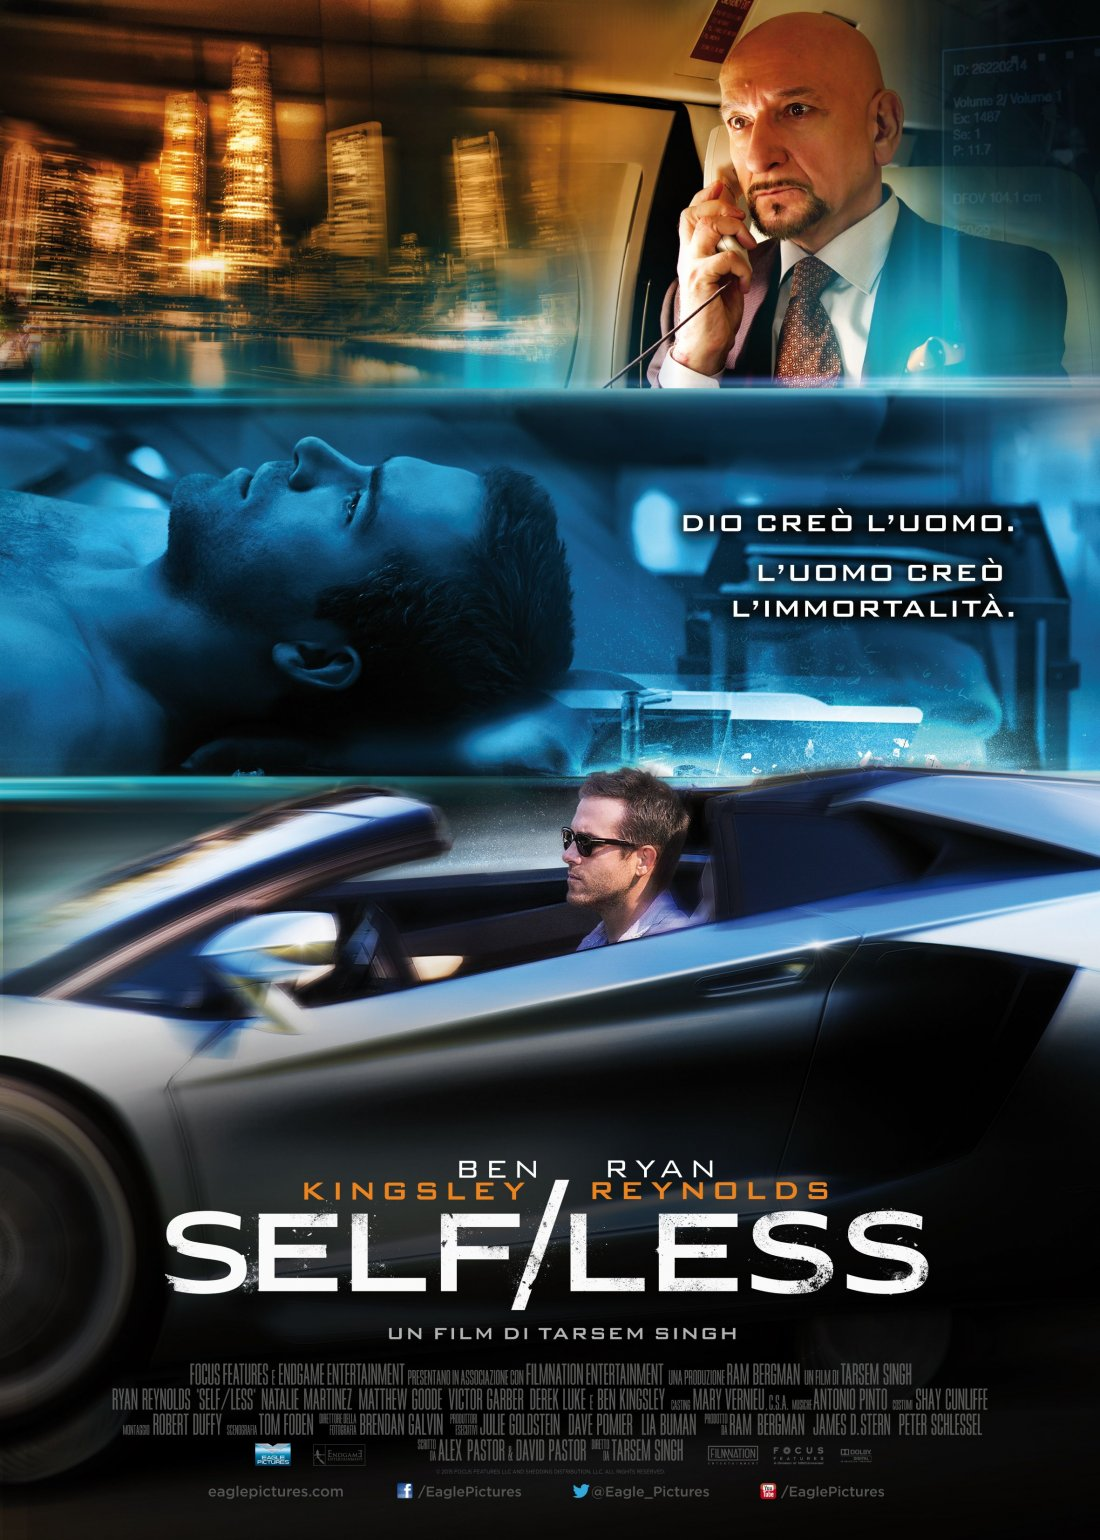 Selfless Poster Base20